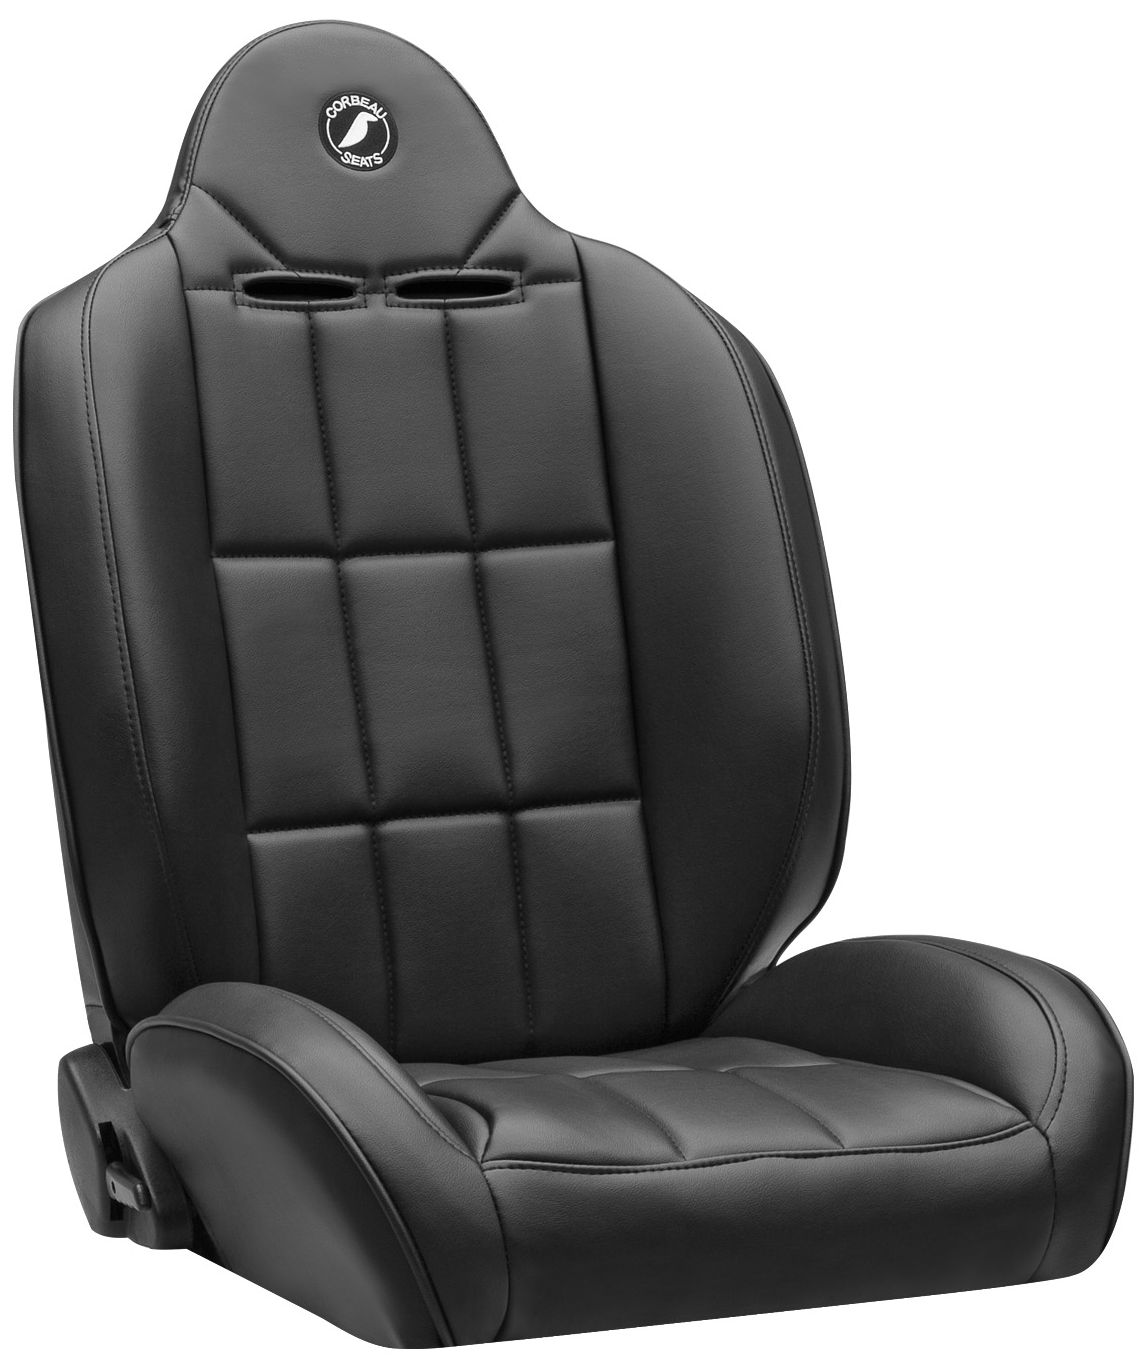 Corbeau Baja RS Racing Seat Black Vinyl 66401